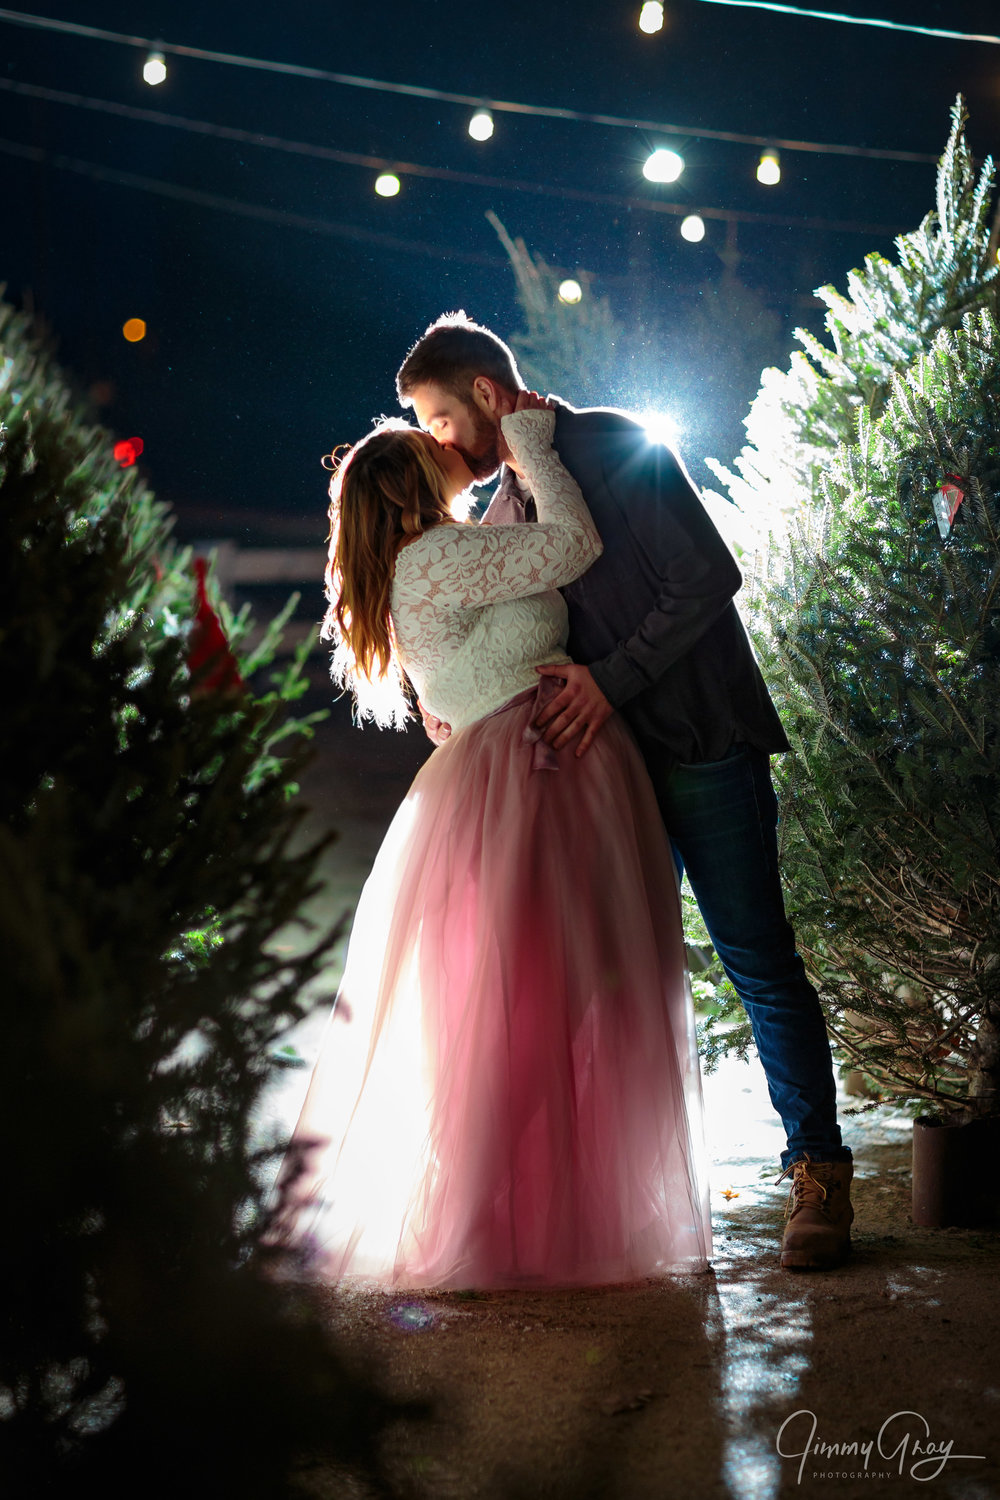 - This shot is one of my favorites from the session. The string lights, backlight, Christmas trees, and of course Lyssa's lovely outfit all come together to complete this shot.